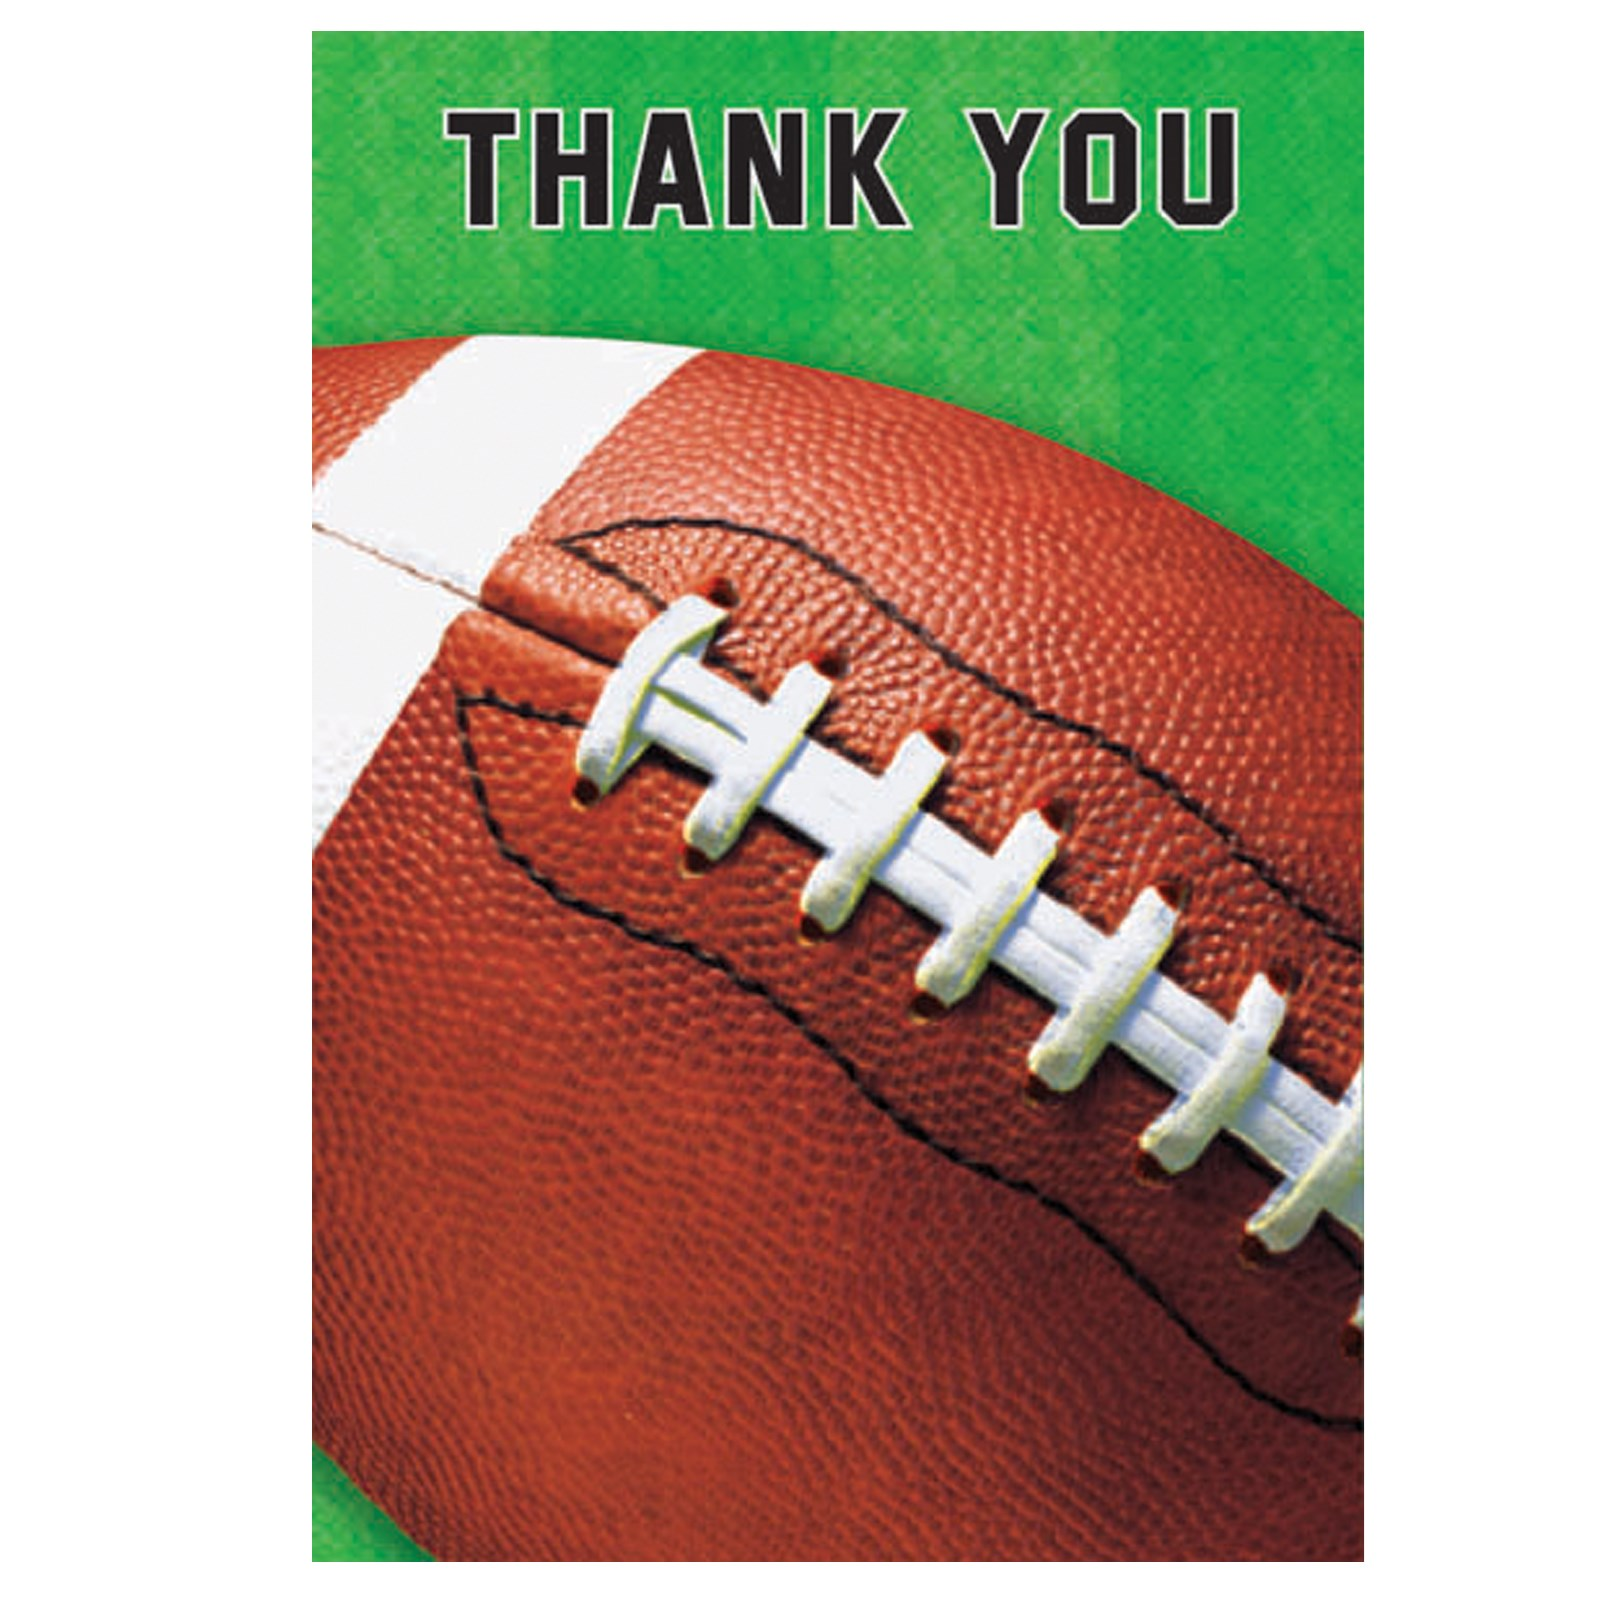 Football Fan – Thank You Cards 8 count